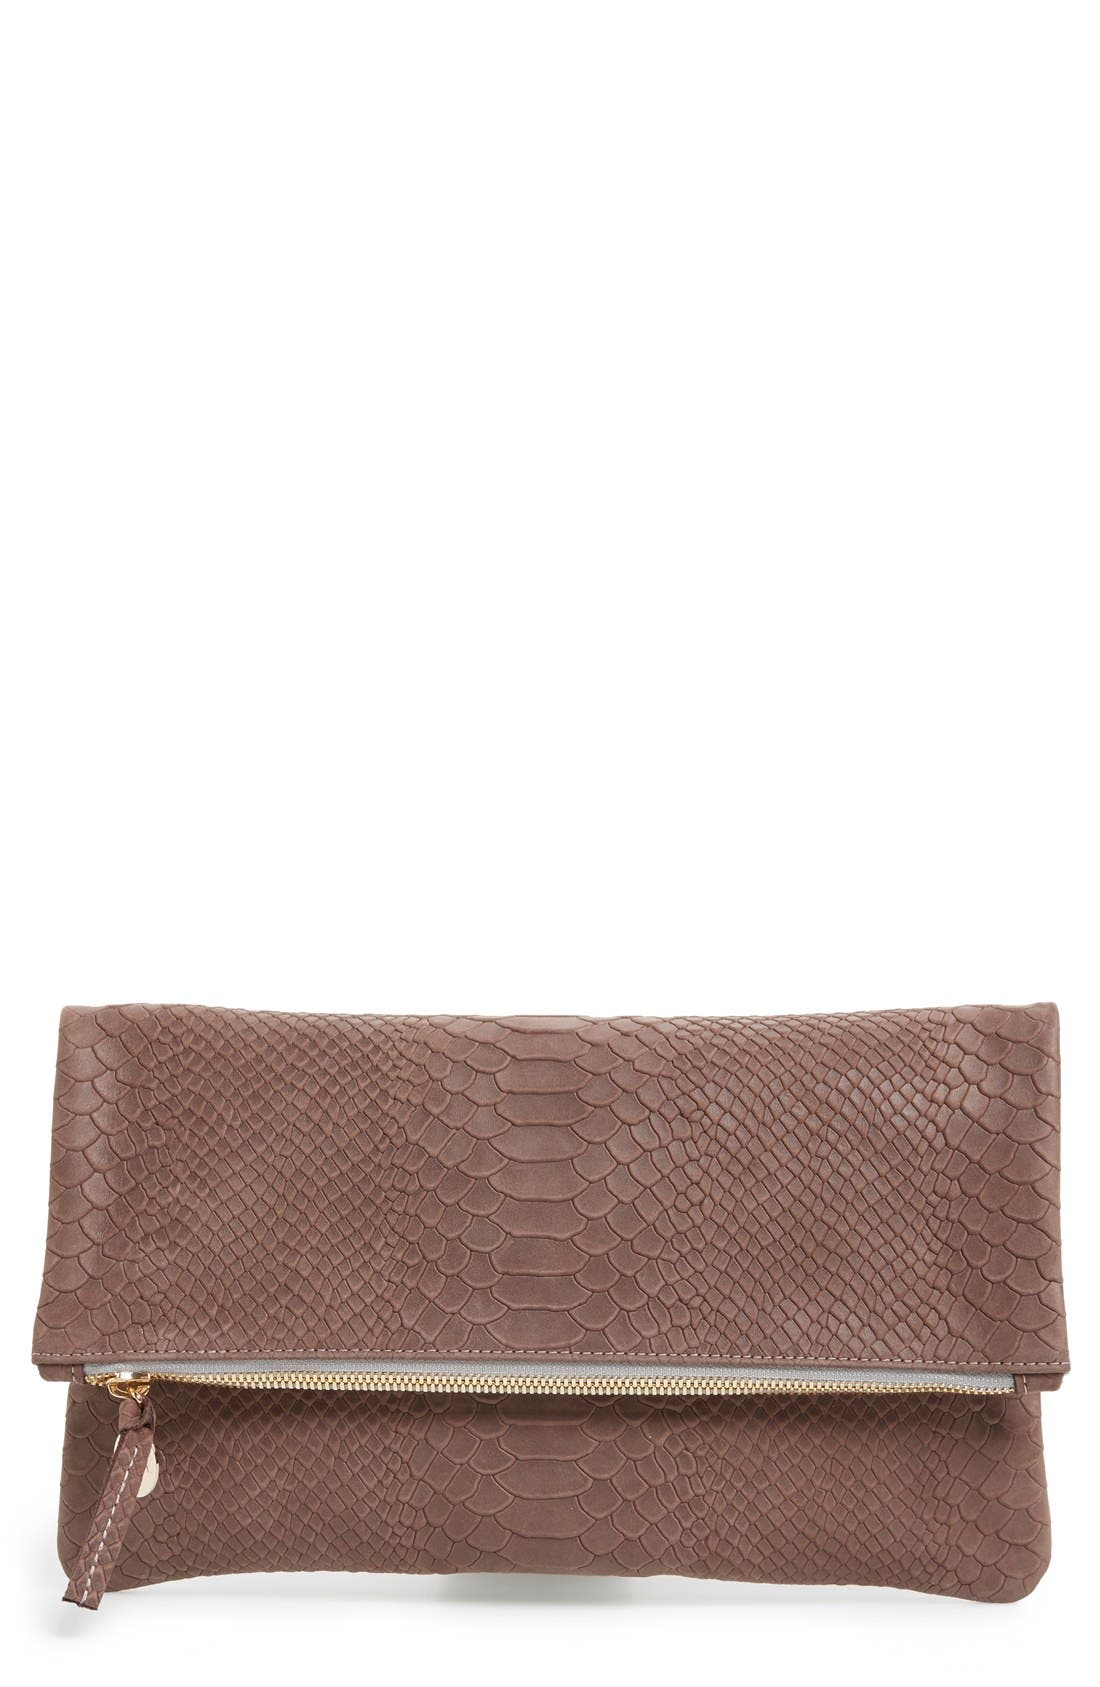 Snake Embossed Leather Foldover Clutch,                             Main thumbnail 1, color,                             Taupe Snake Nubuck